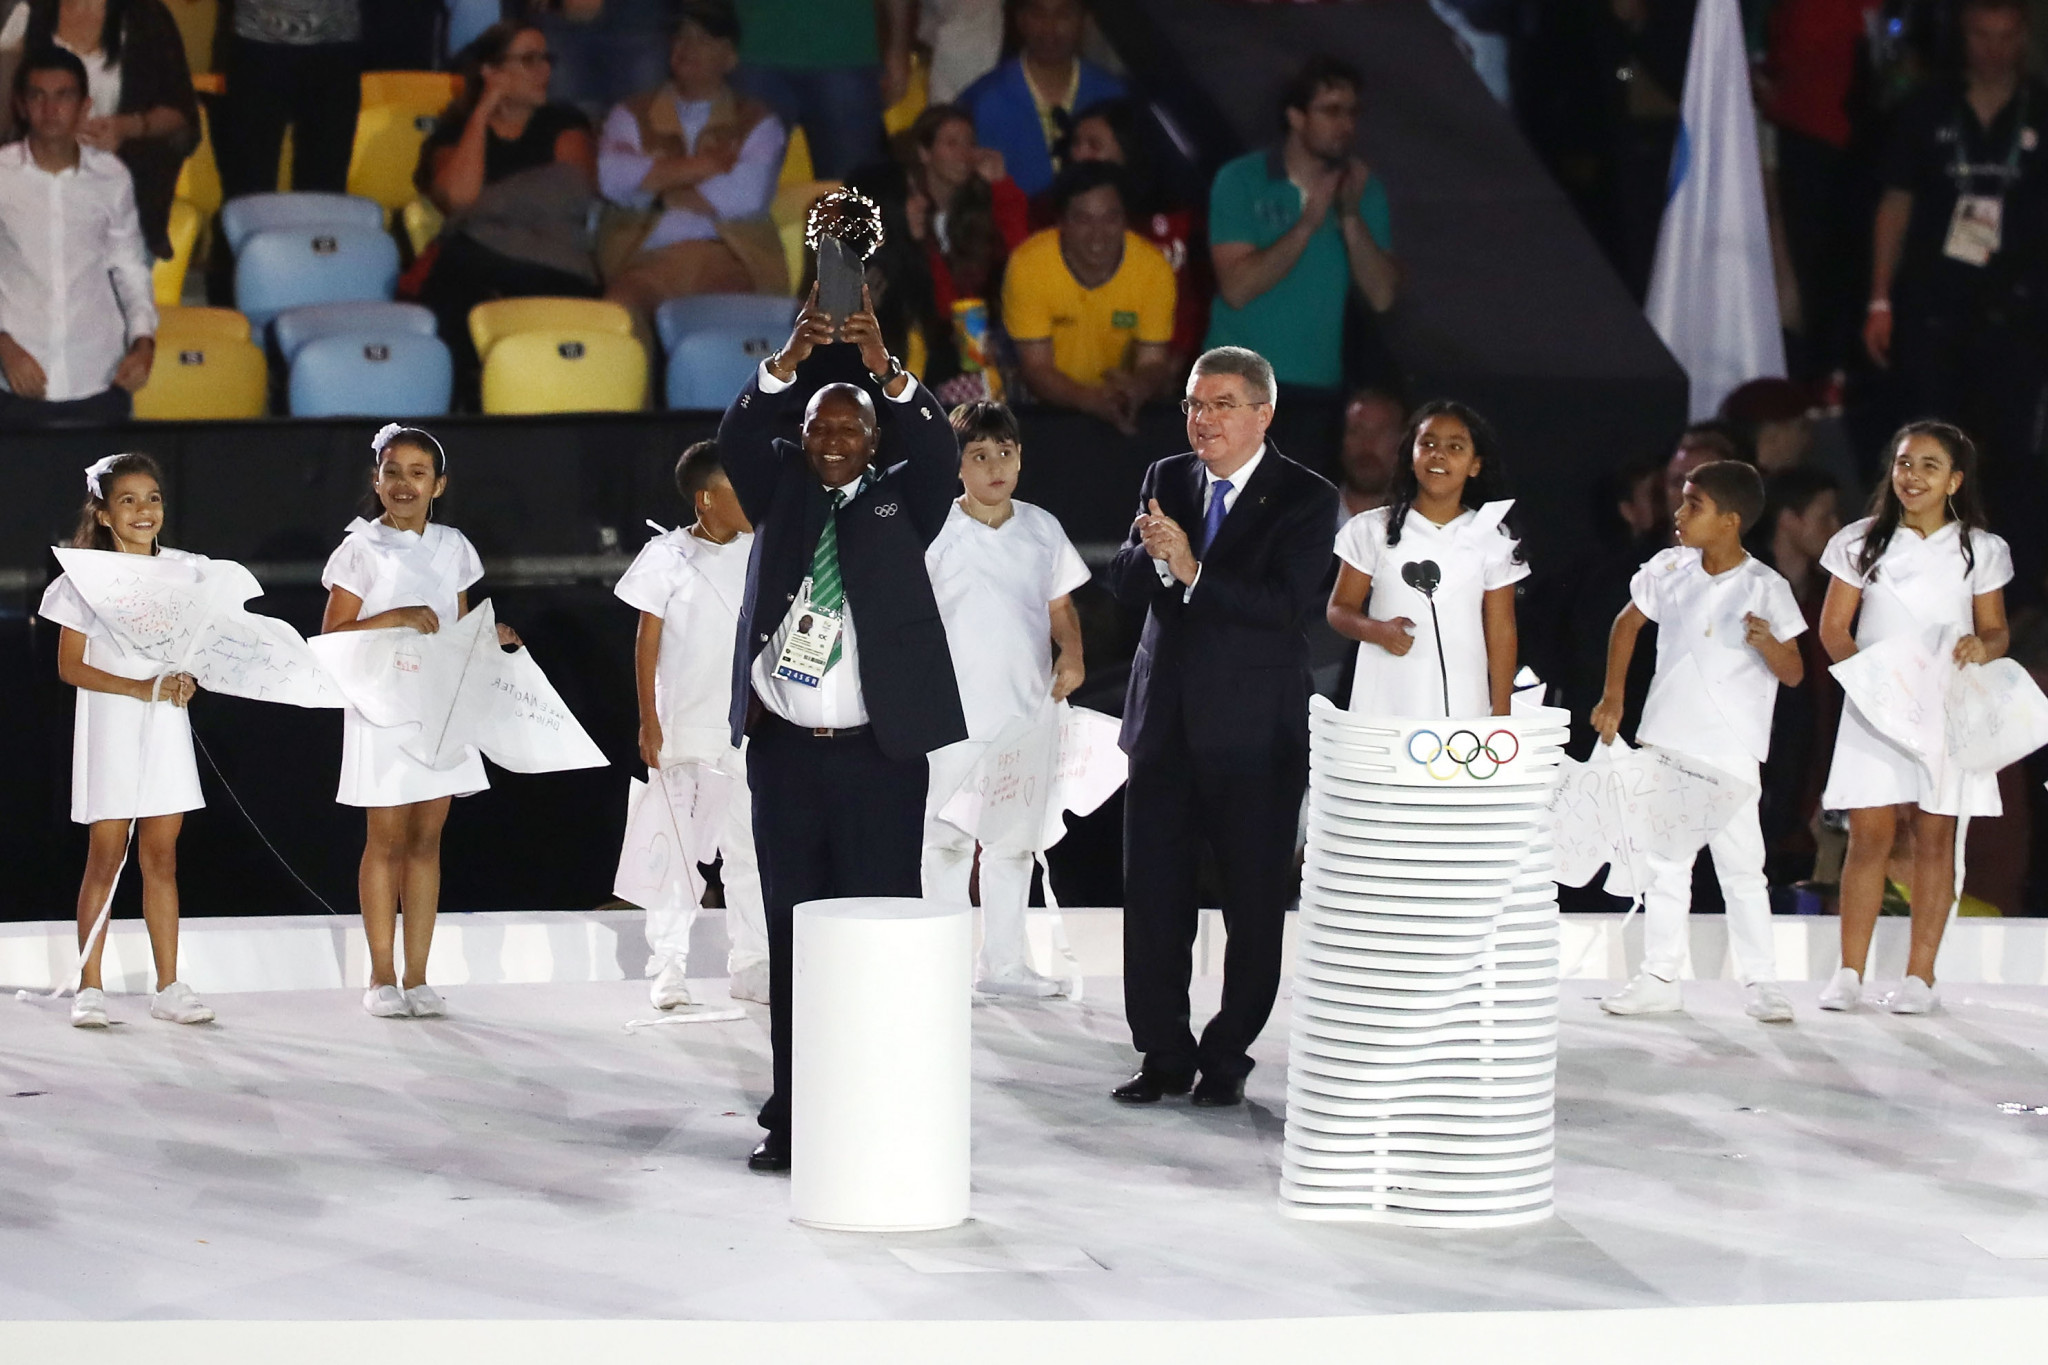 Kenya's double Olympic gold medallist Kip Keino received the first-ever Laurel Award during the Opening Ceremony of Rio 2016 from IOC President Thomas Bach but is now facing criminal charges ©Getty Images